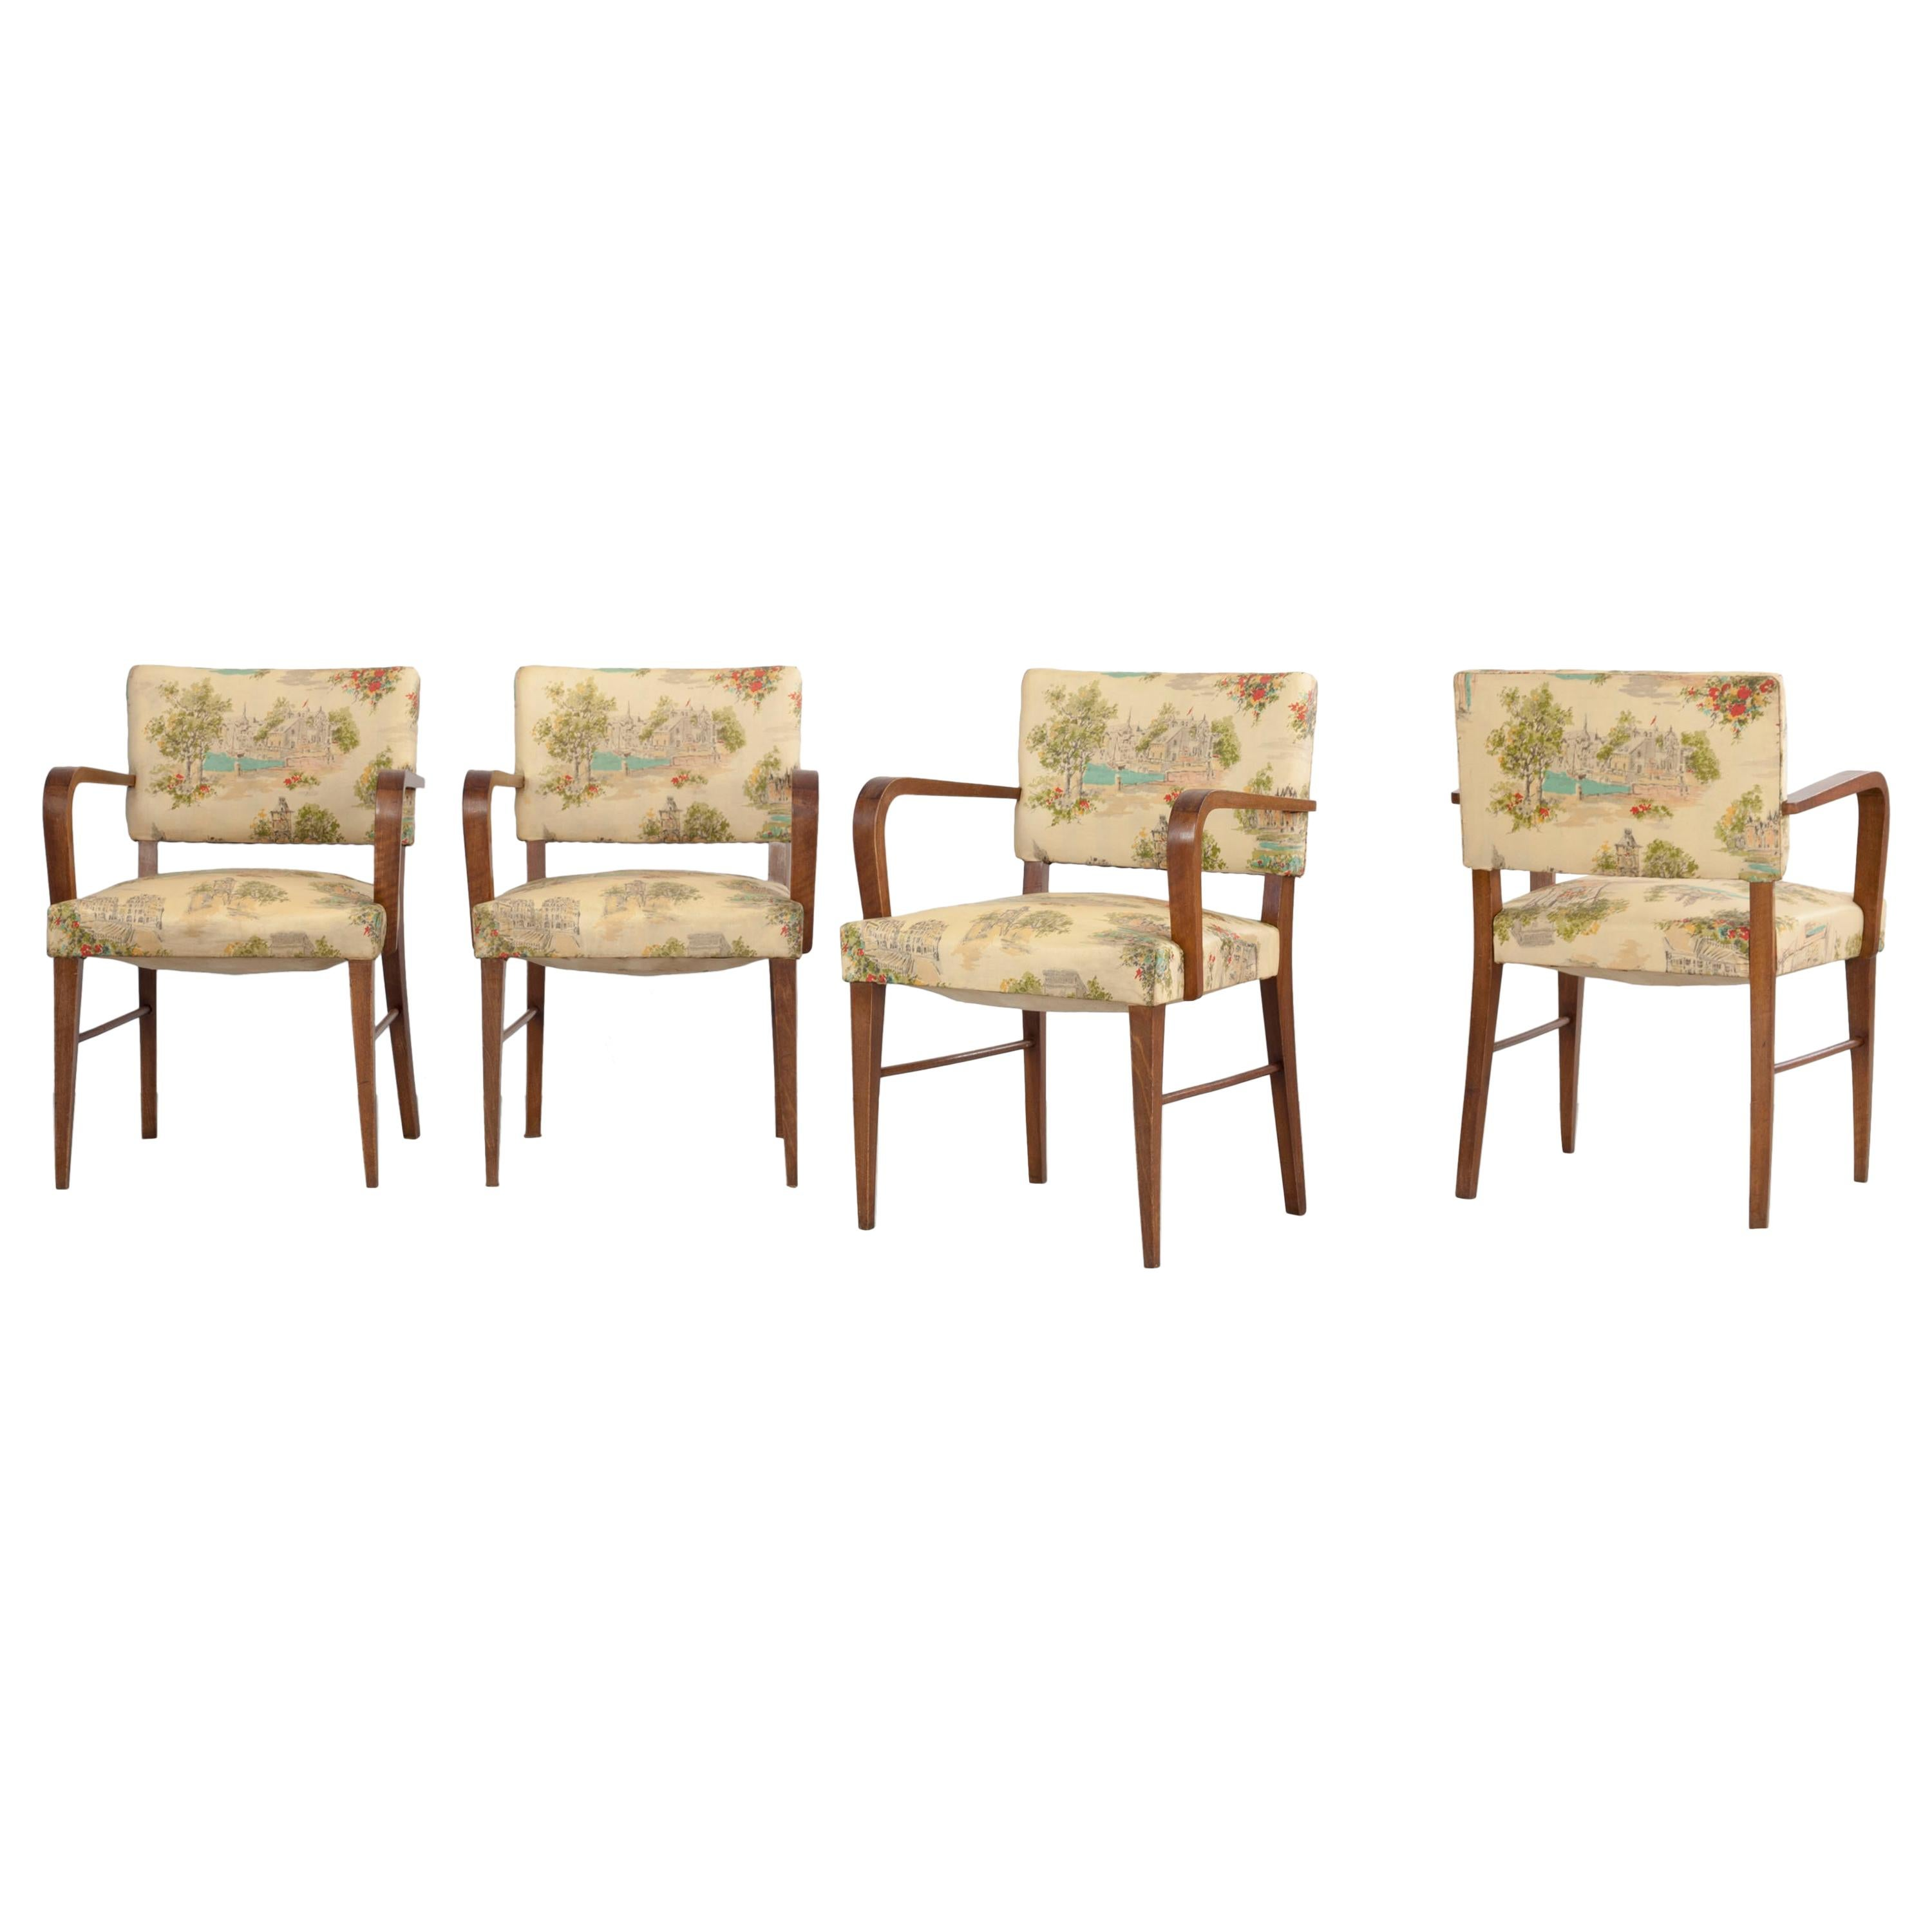 Set of 4 Italian Authentic Armchairs, Chintz Cover and Landscape Scenery, 1930s